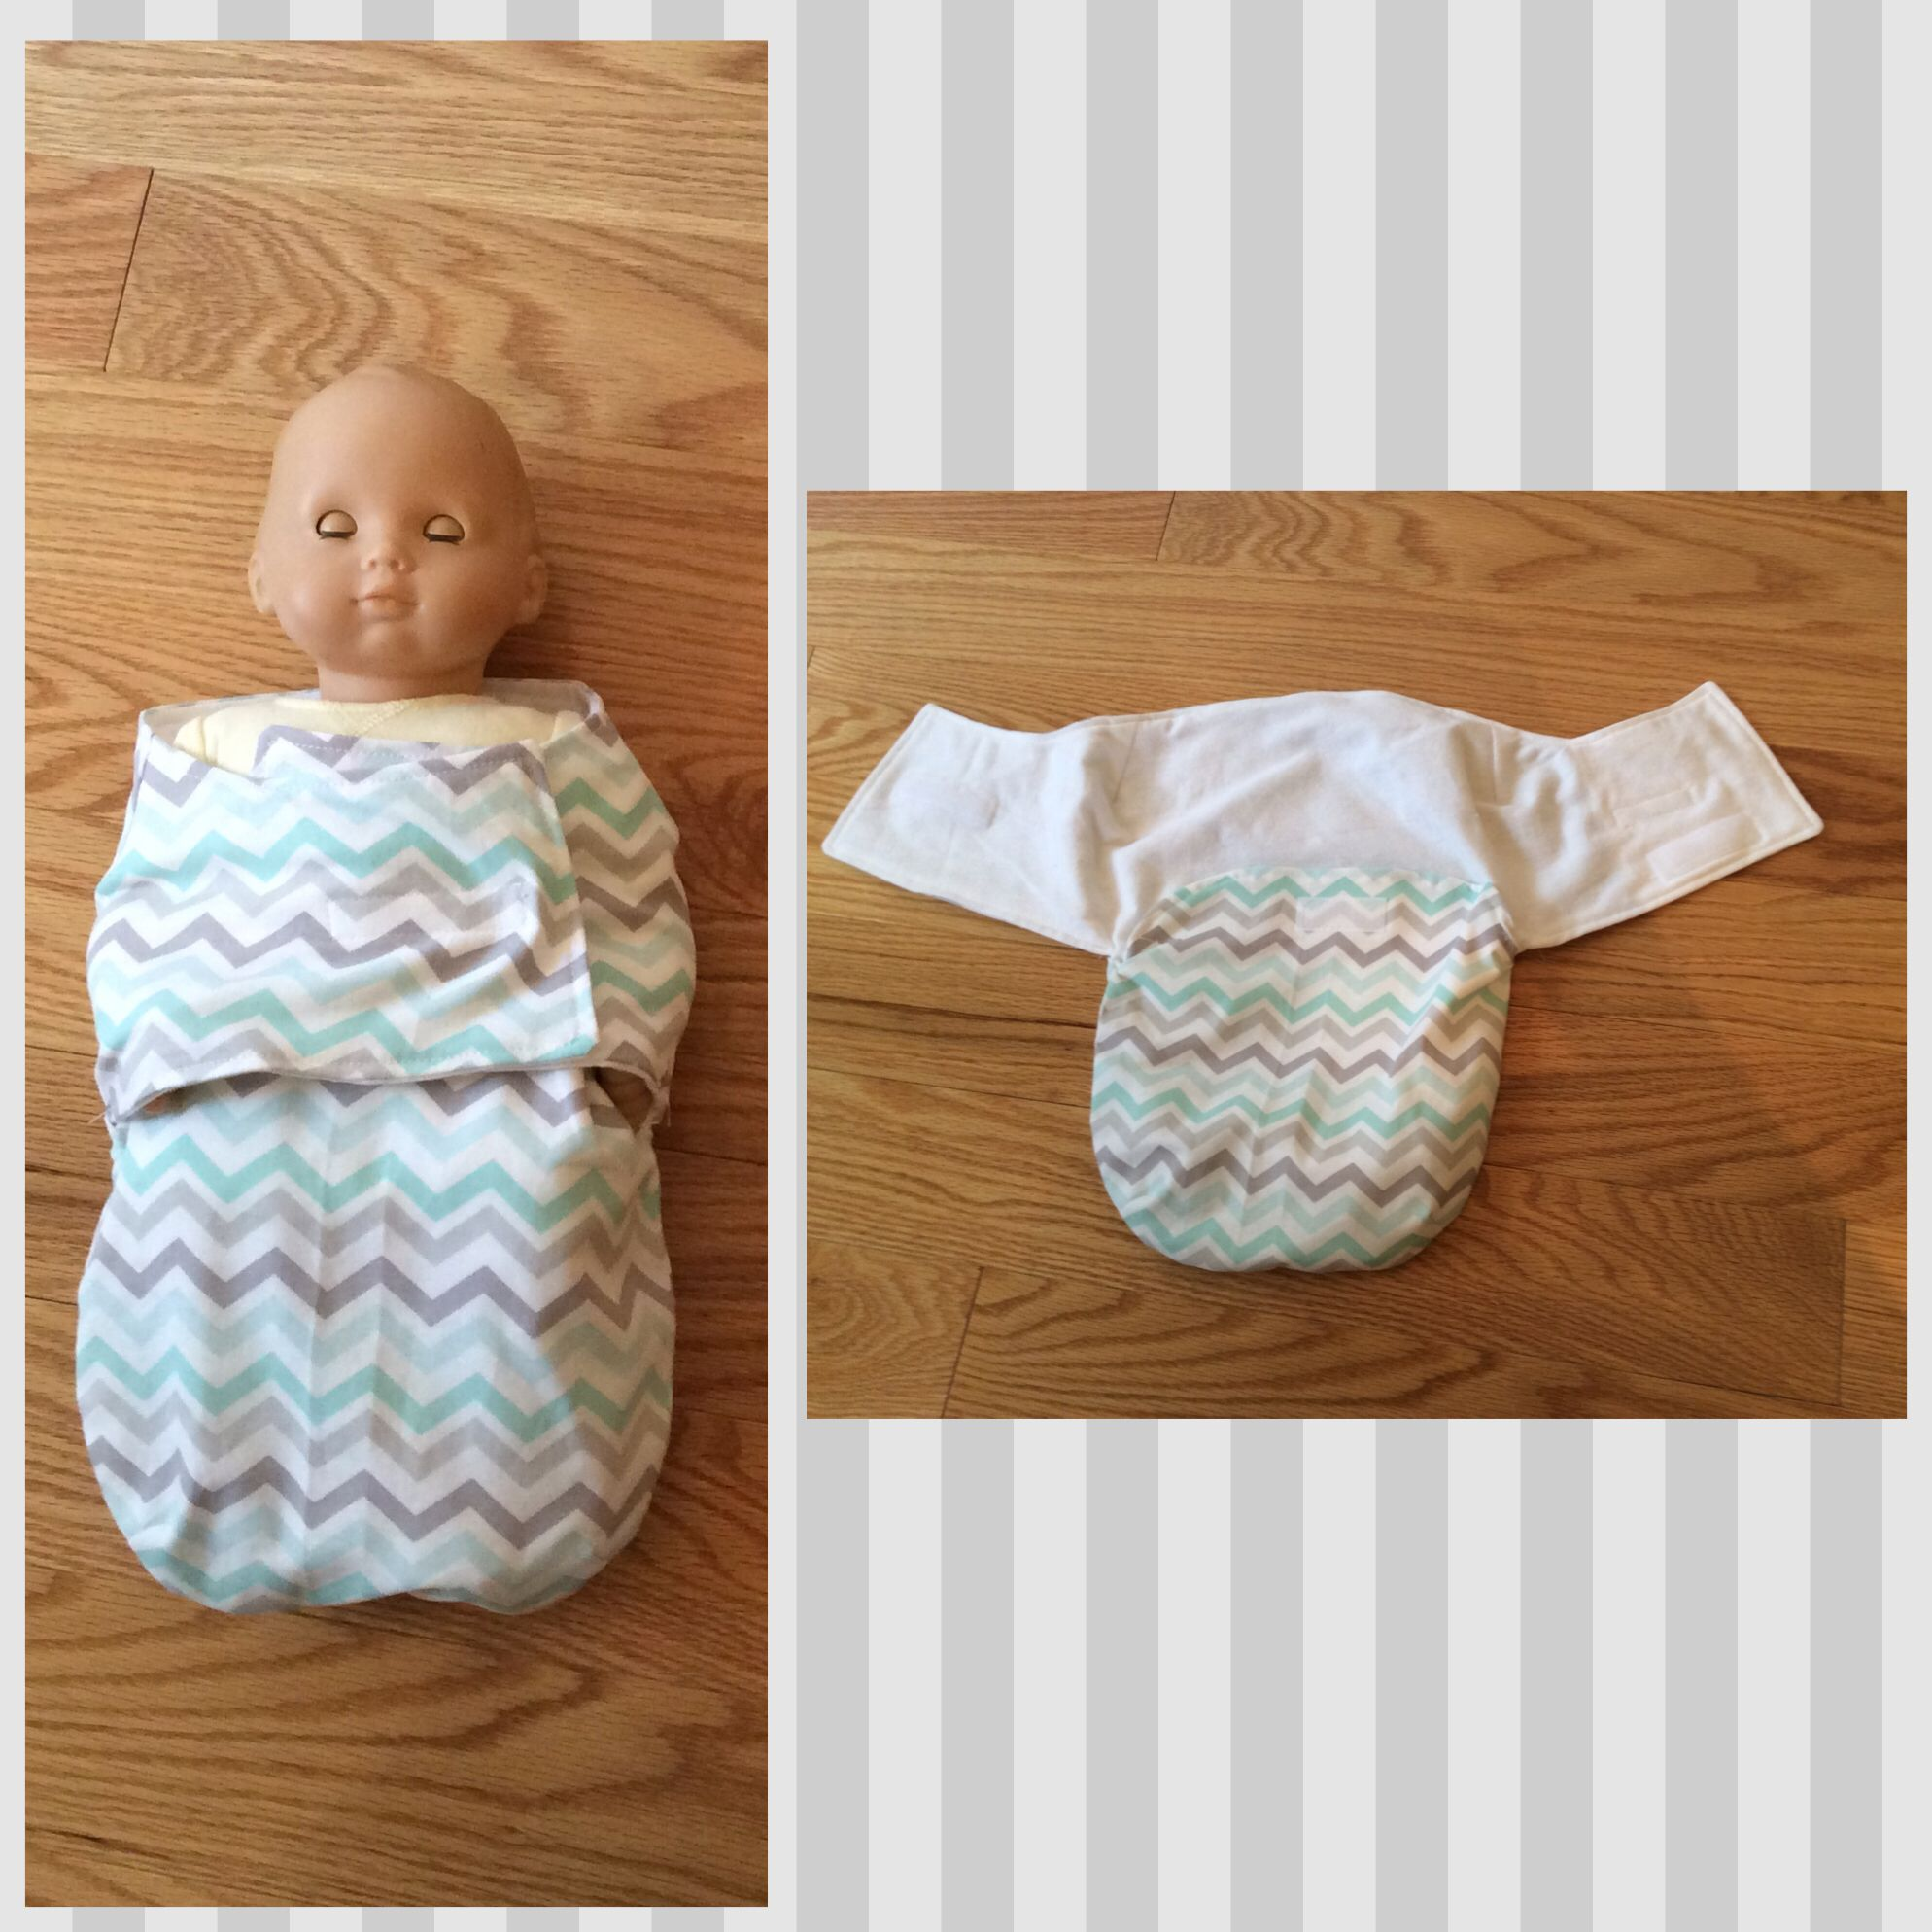 Snuggler Baby Swaddle Pattern